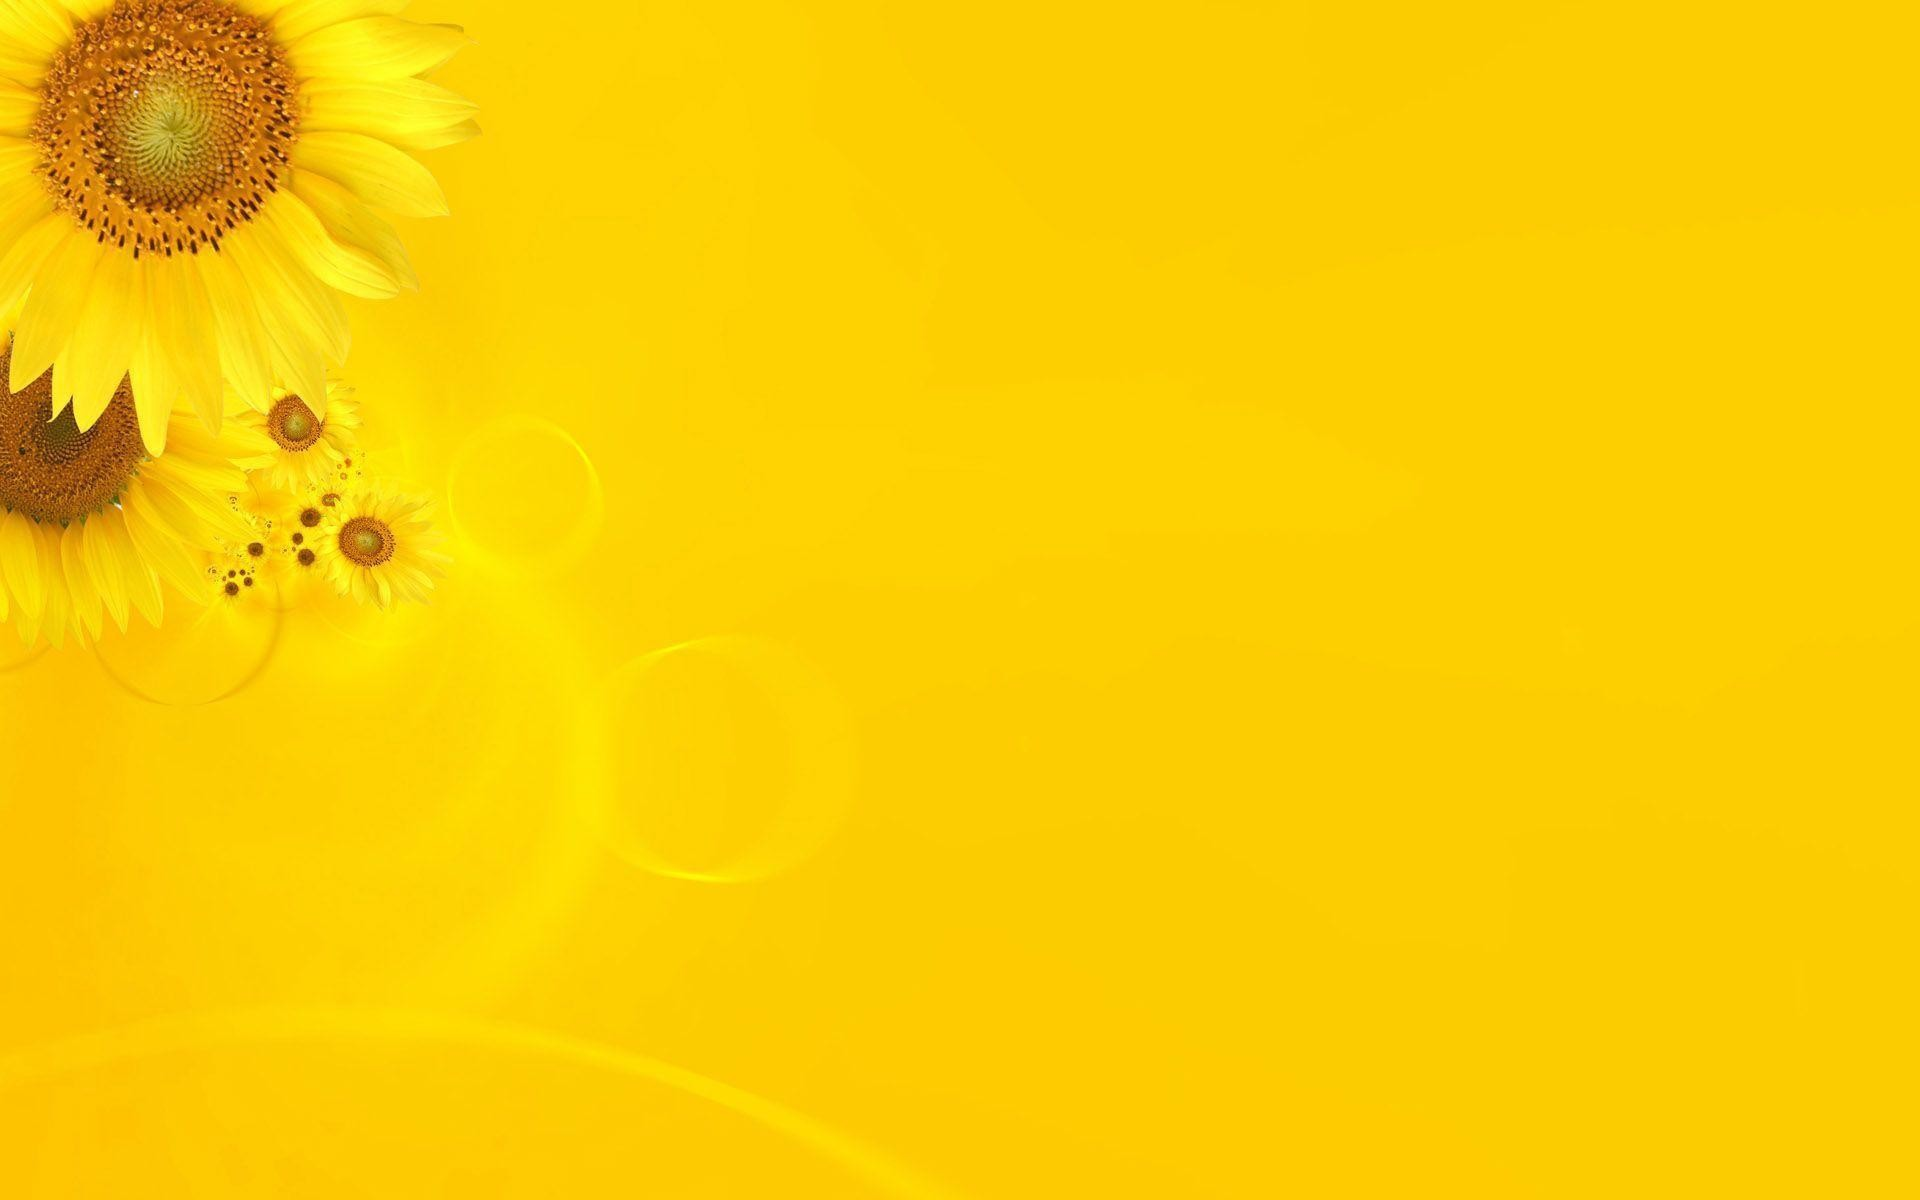 1920x1200 Wallpapers For > Bright Yellow Background